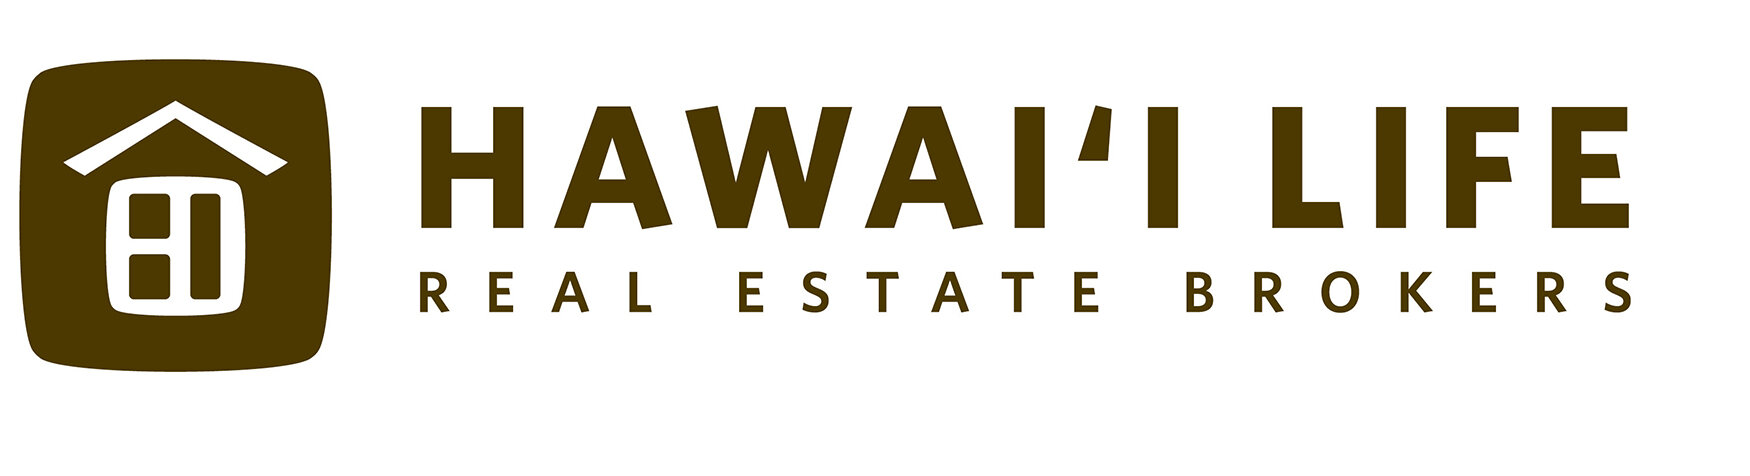 Hawaii-Life-logo.jpg